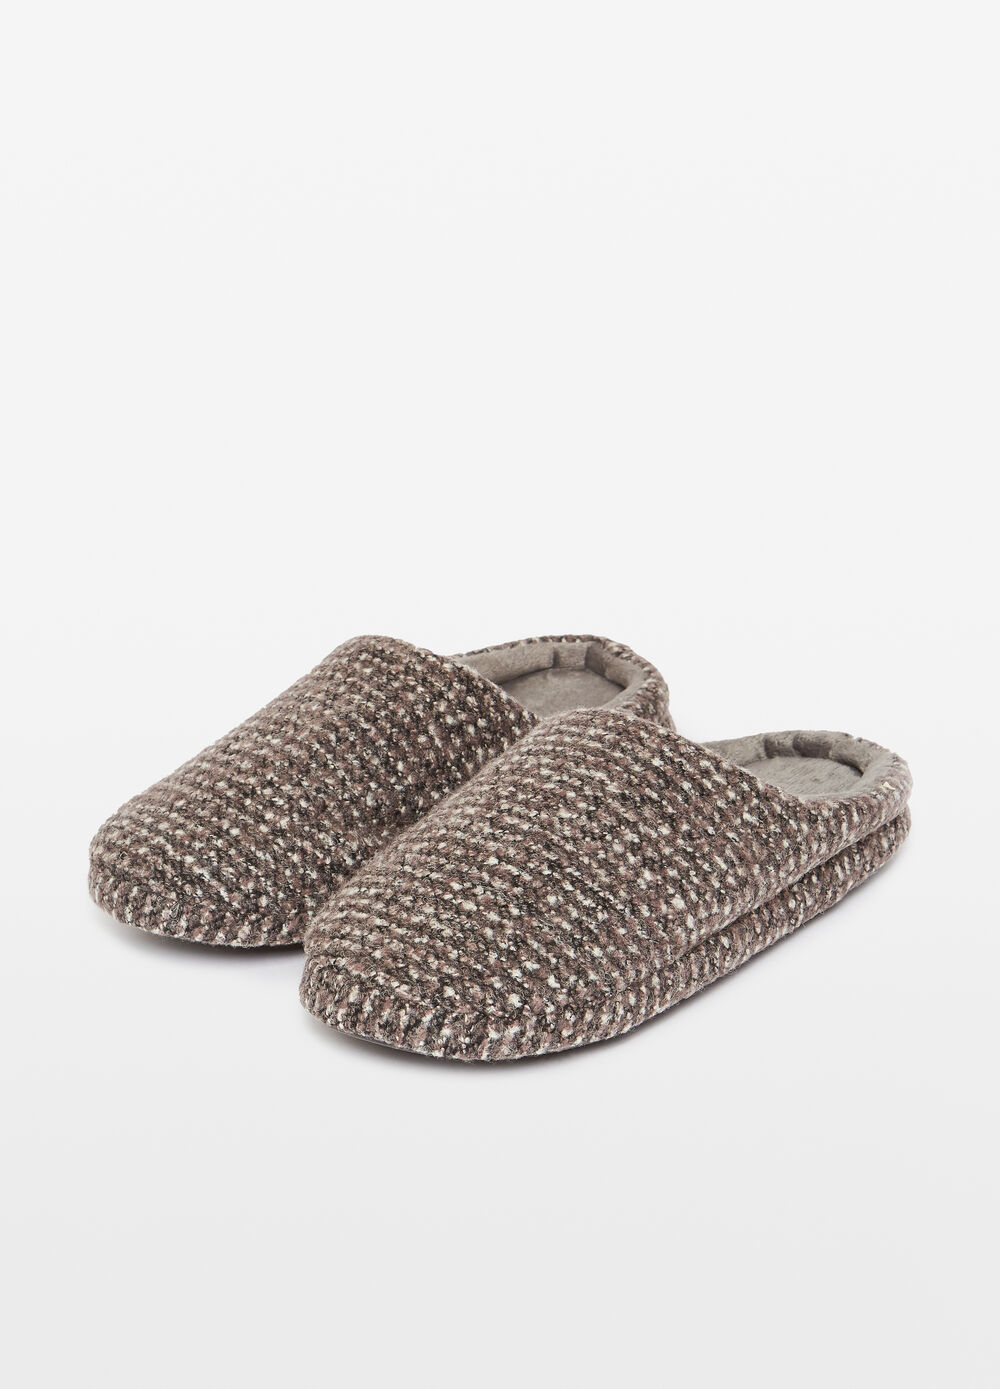 Mélange slippers with braided weave